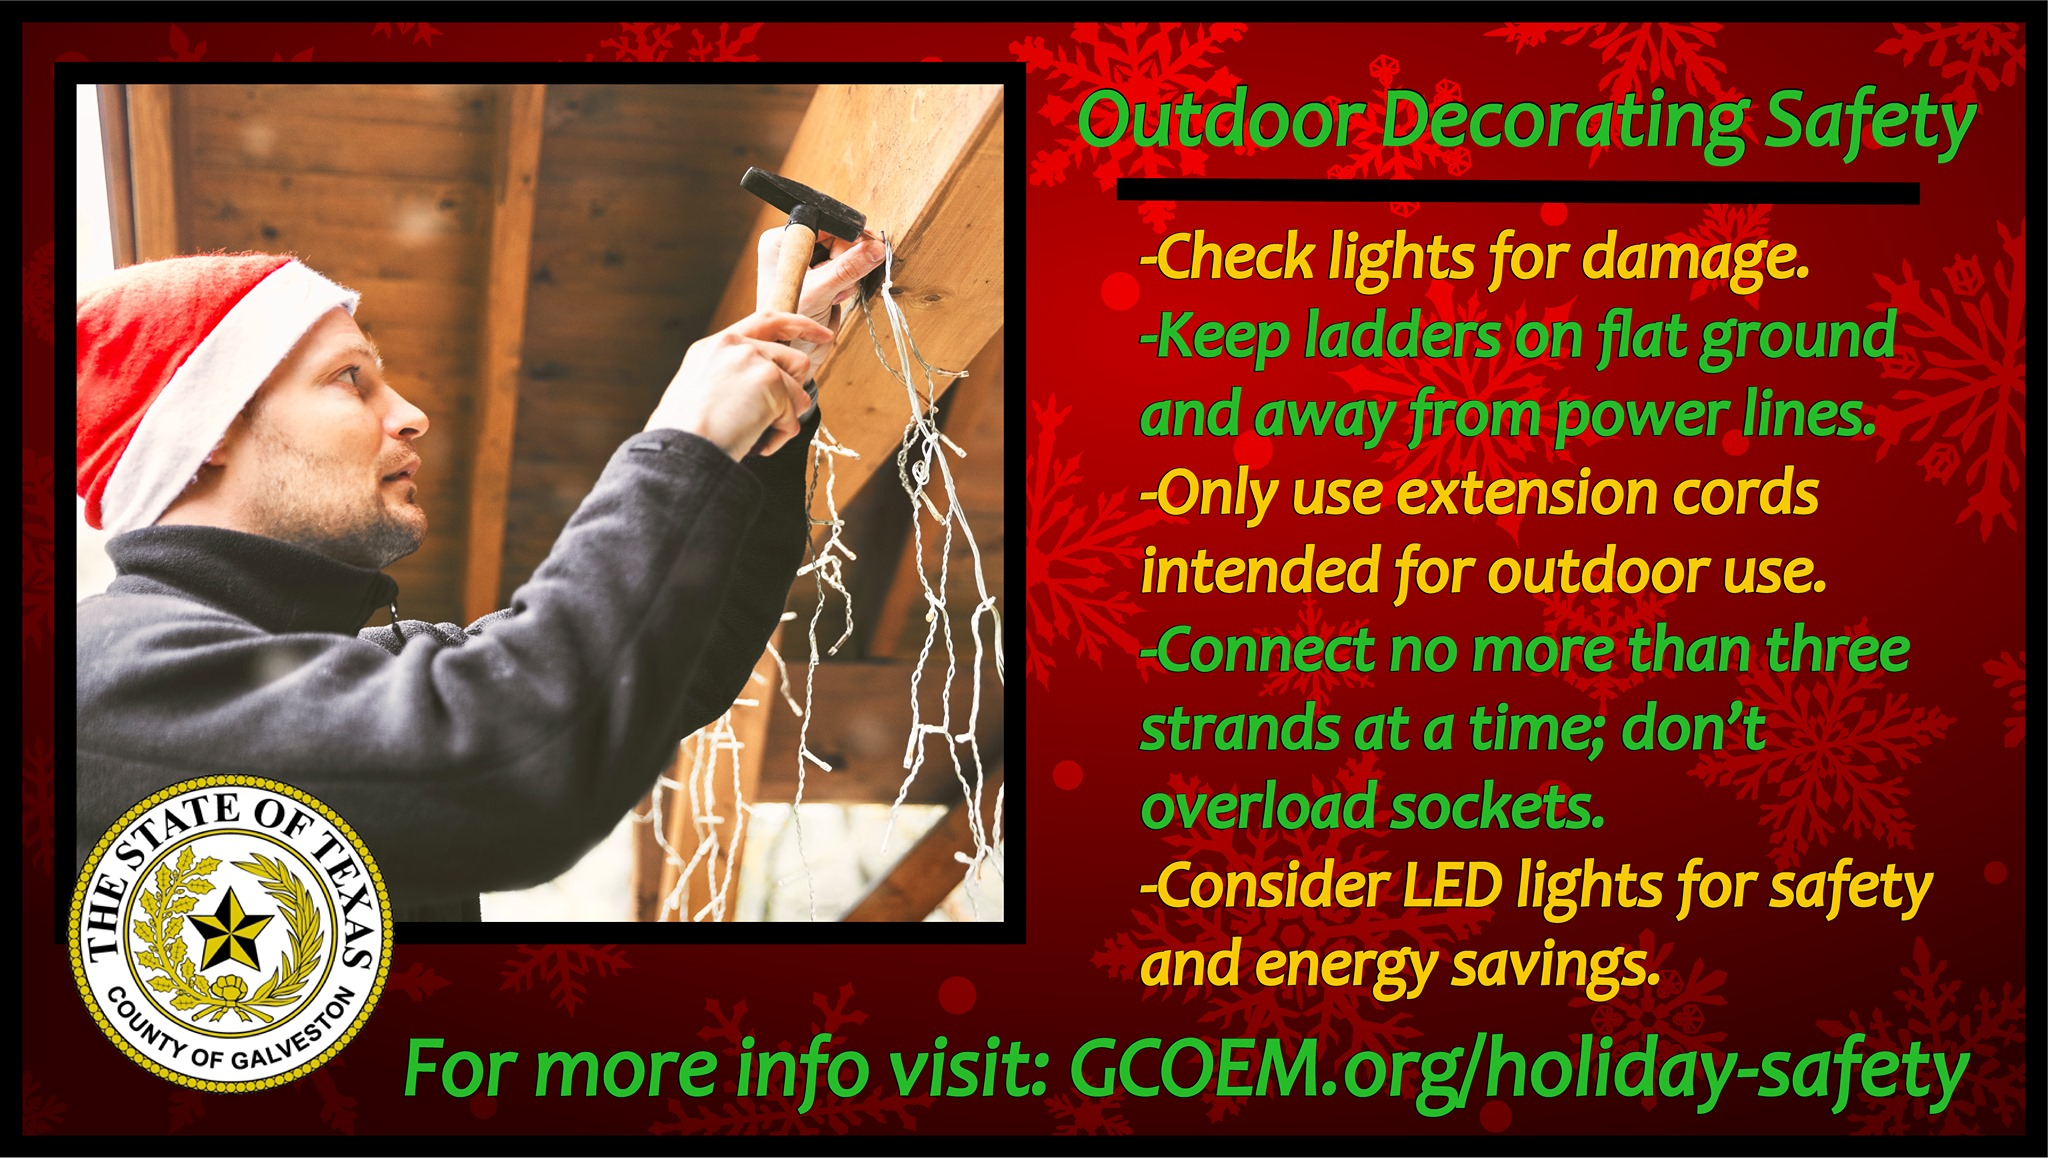 Outdoor Decorating Safety